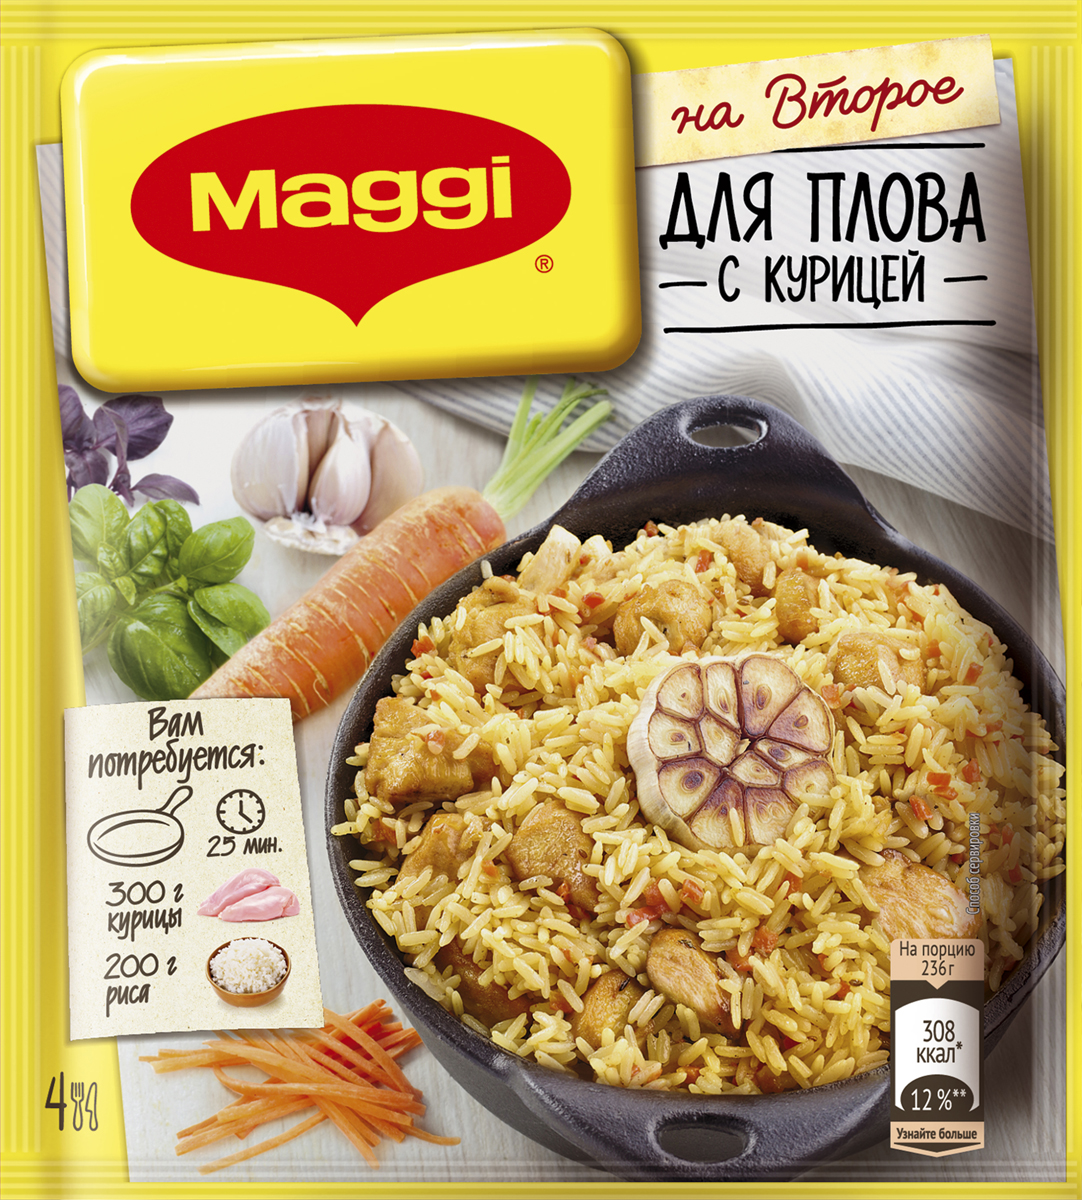 maggi branding About maggi brand maggi is a product that belongs to nestle india, which is one of the leading fast food companies in the country the various maggi products are stocks, instant noodles.